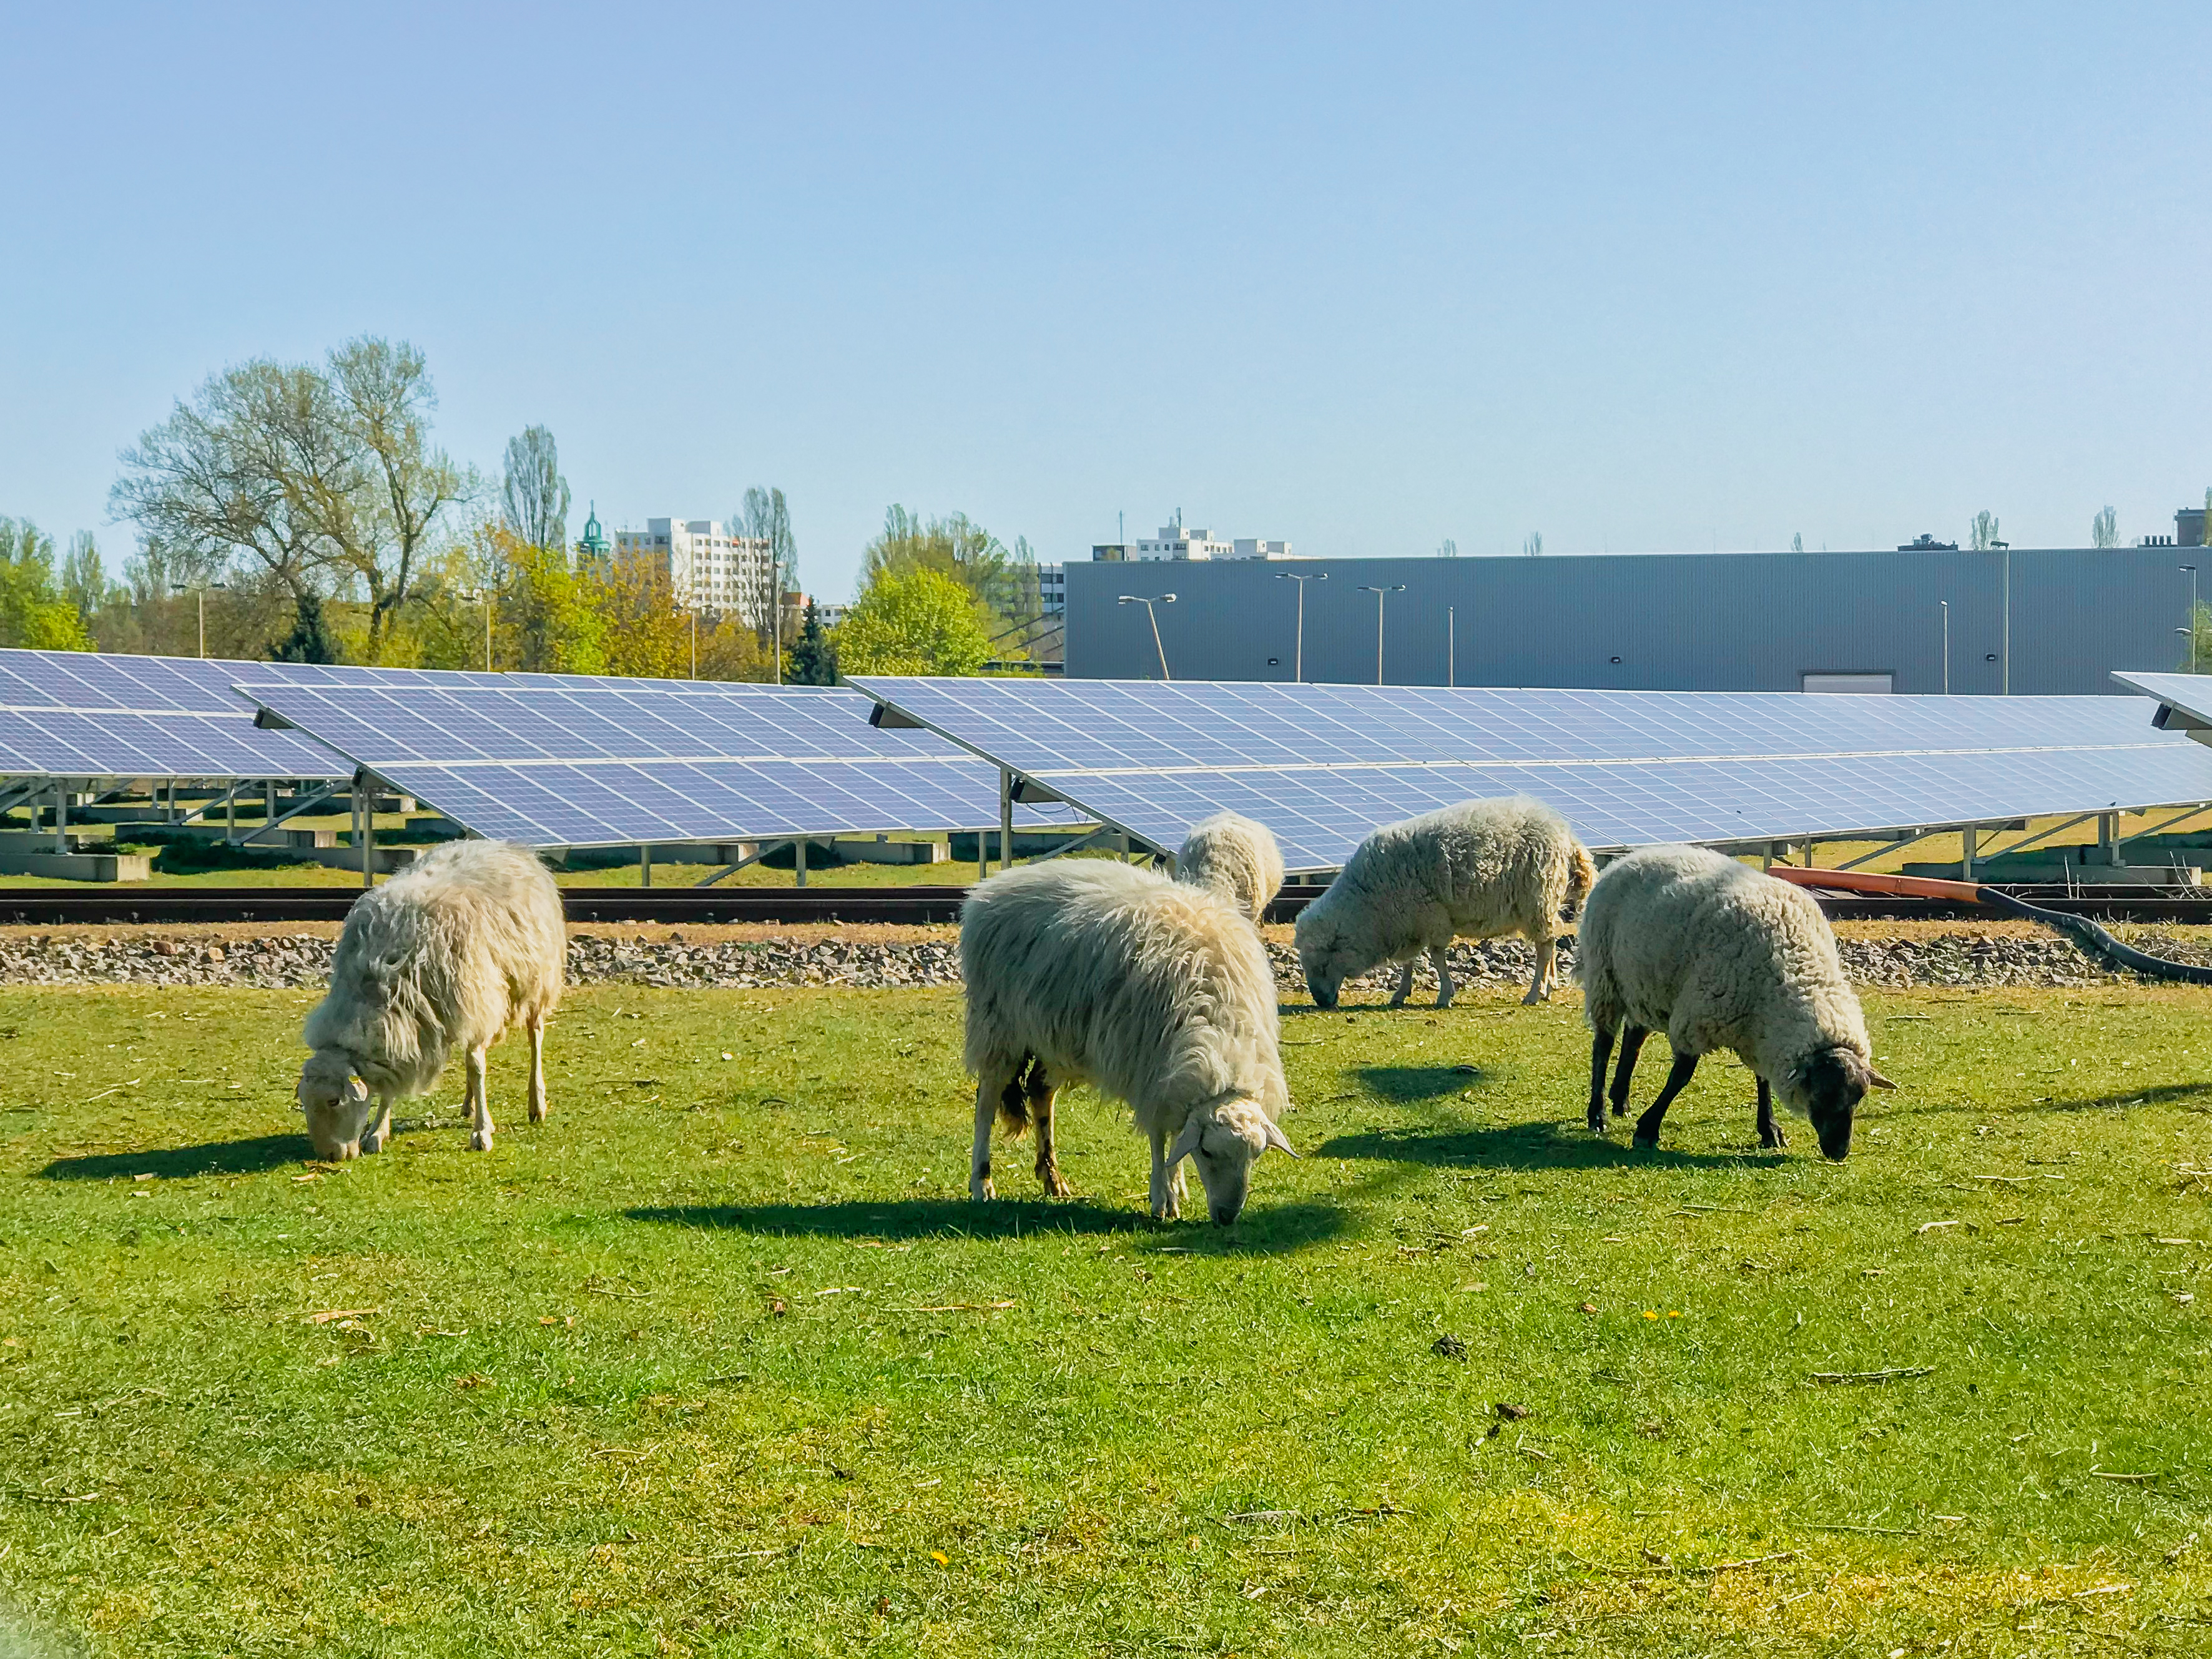 grazing sheep in front of solar panels